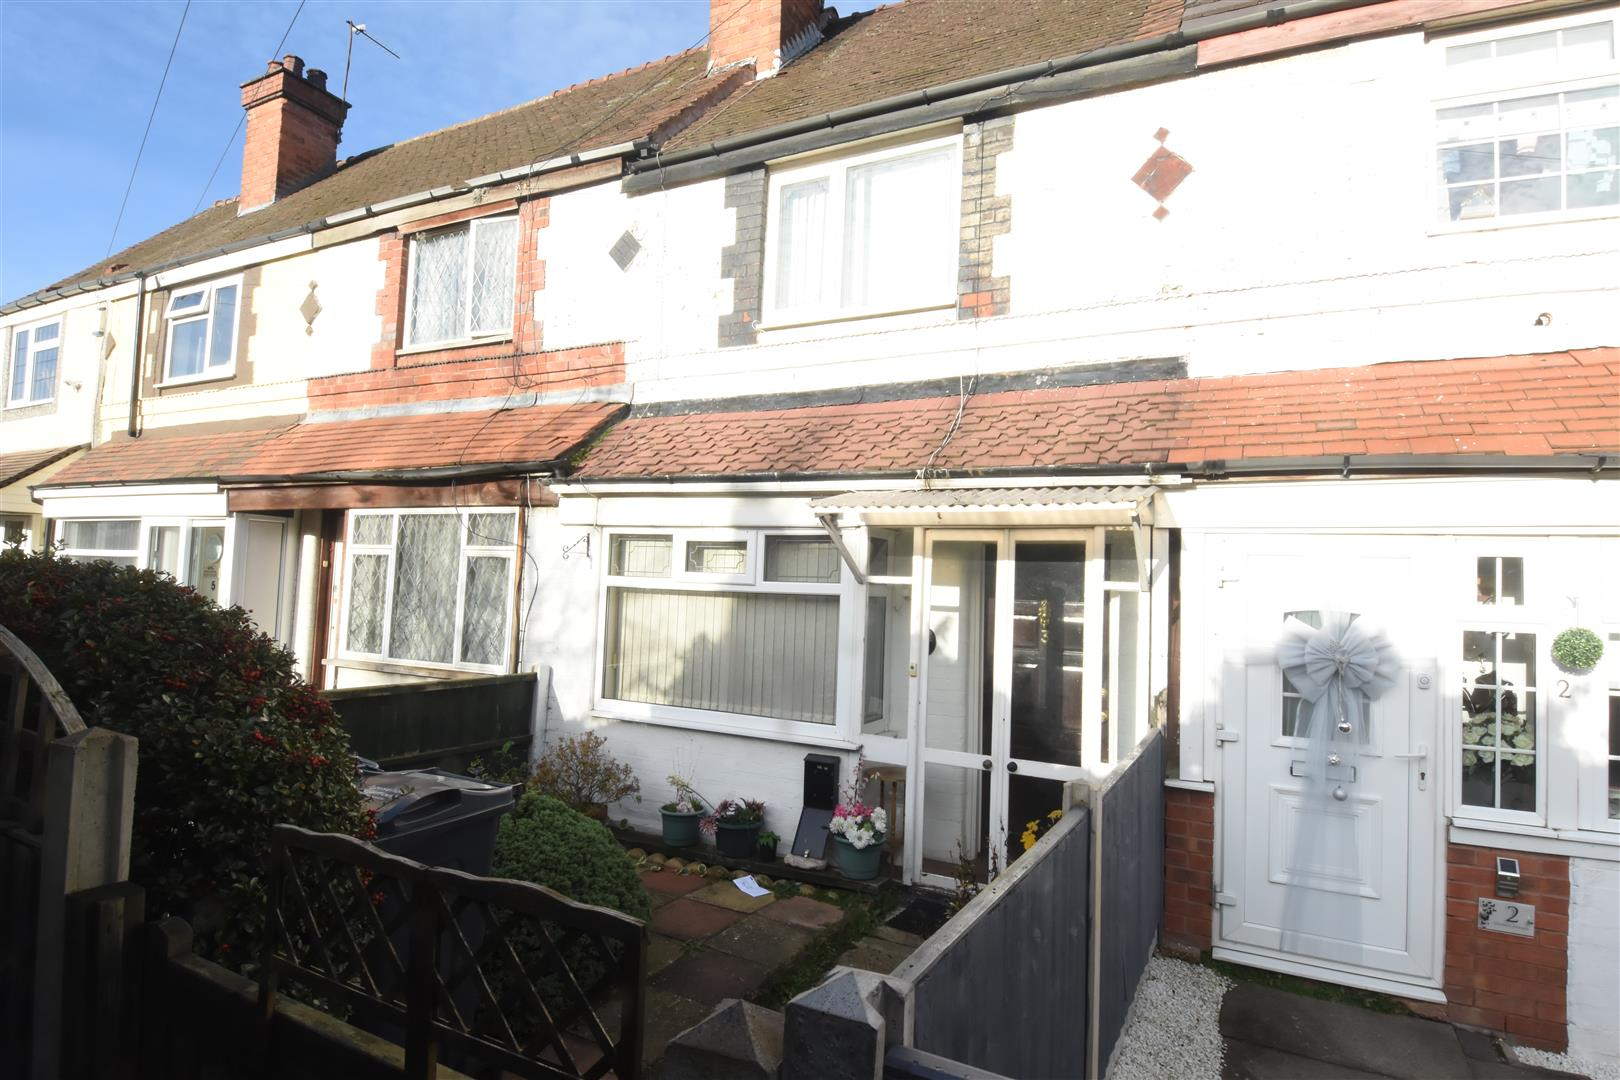 2 bed house for sale in Grange Avenue Off Asquith Rd, Ward End, Birmingham, B8